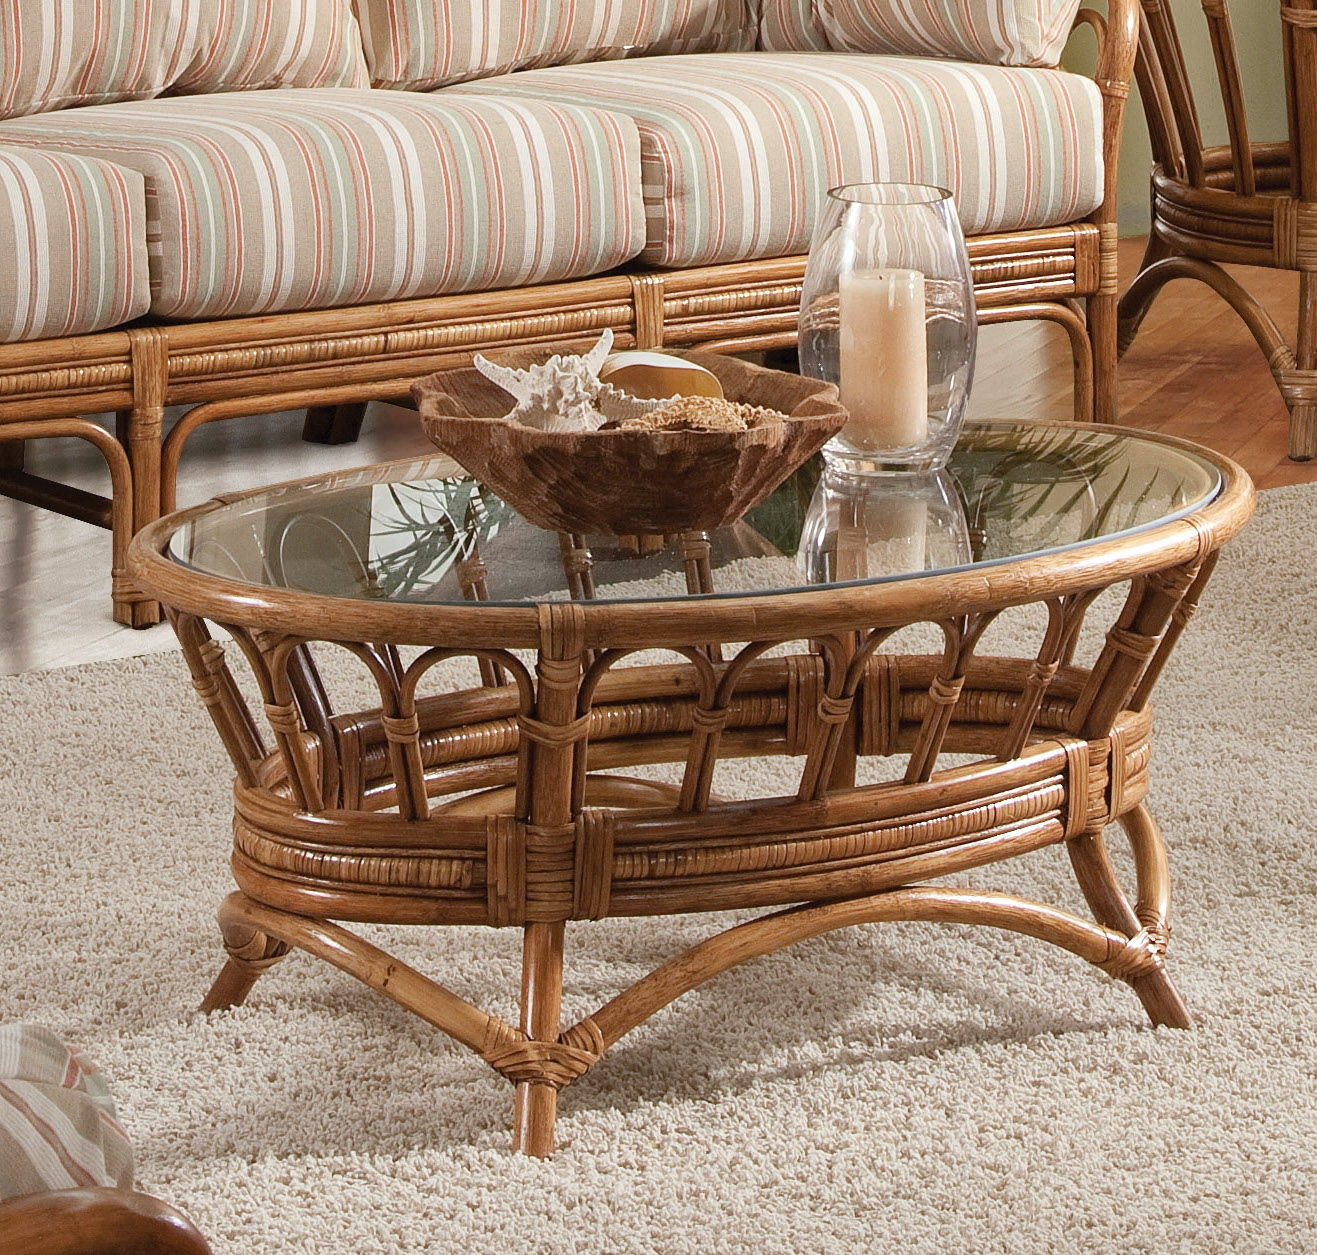 Moss Landing Oval Cocktail Table 901-023